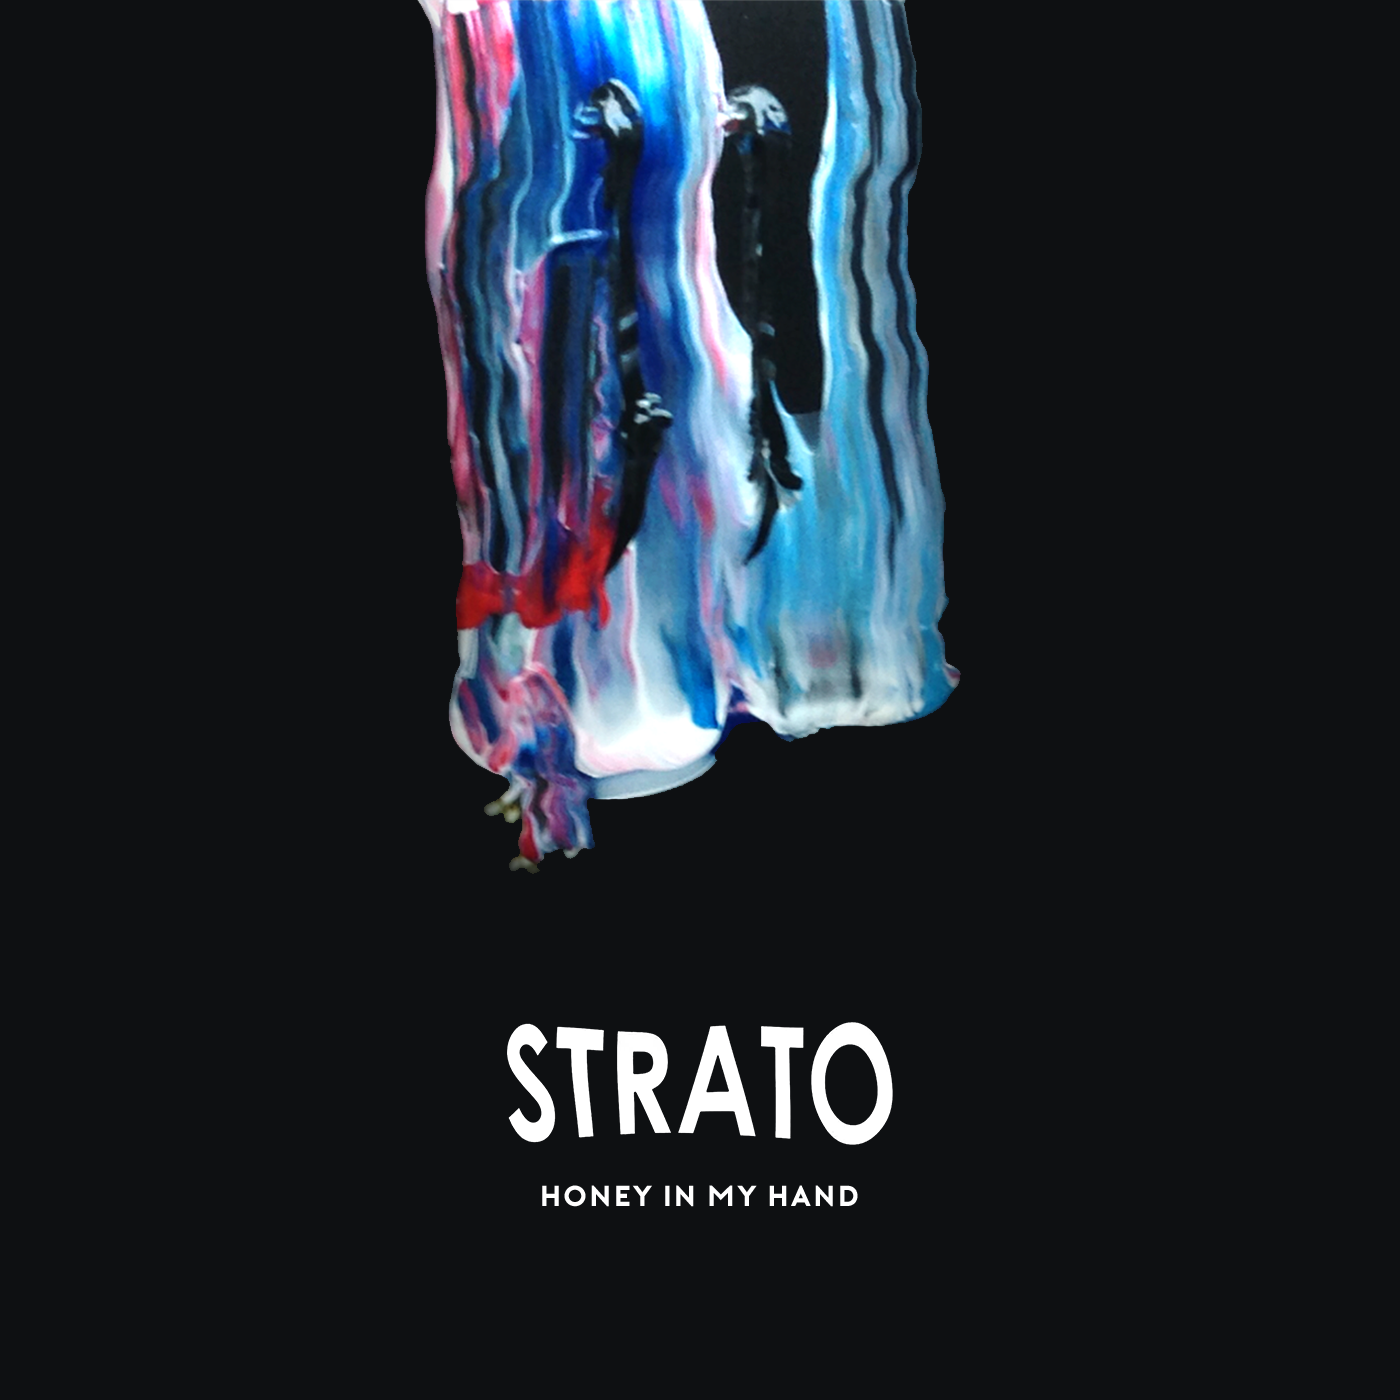 SALE! Strato - Honey In My Hand